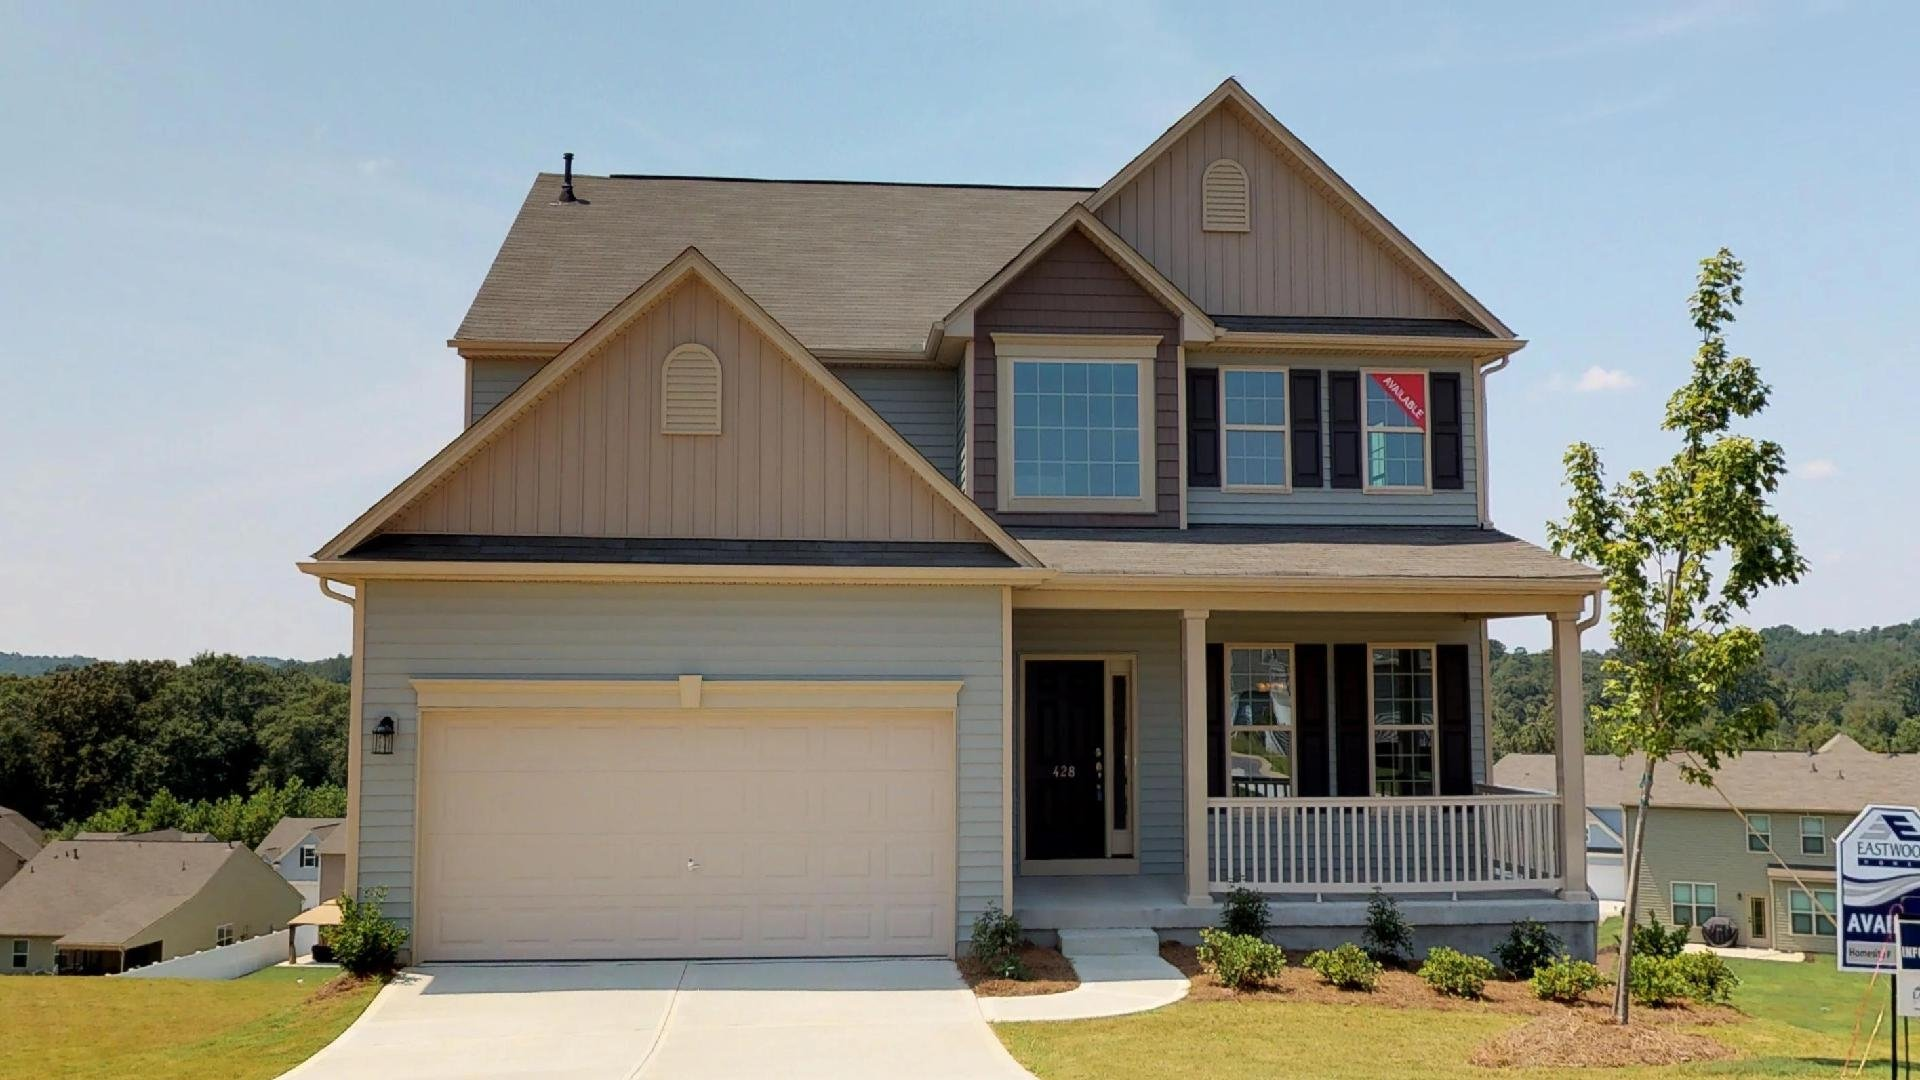 Exterior of move-in ready home in Caledonia